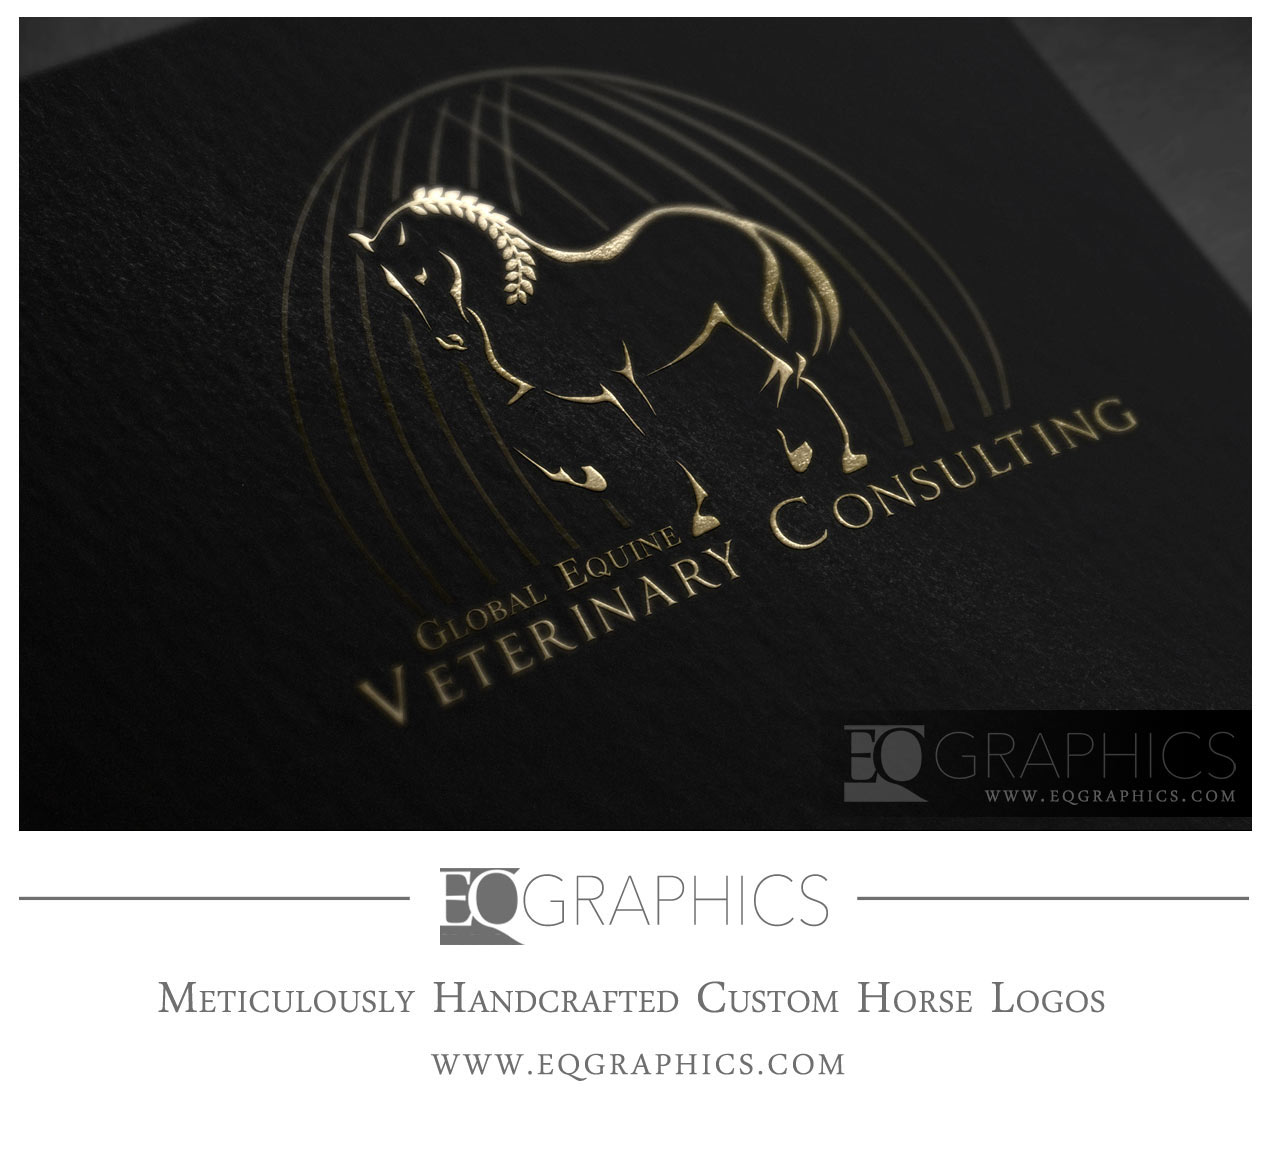 Global Equine Veterinary Consulting Logo Design by EQ Graphics